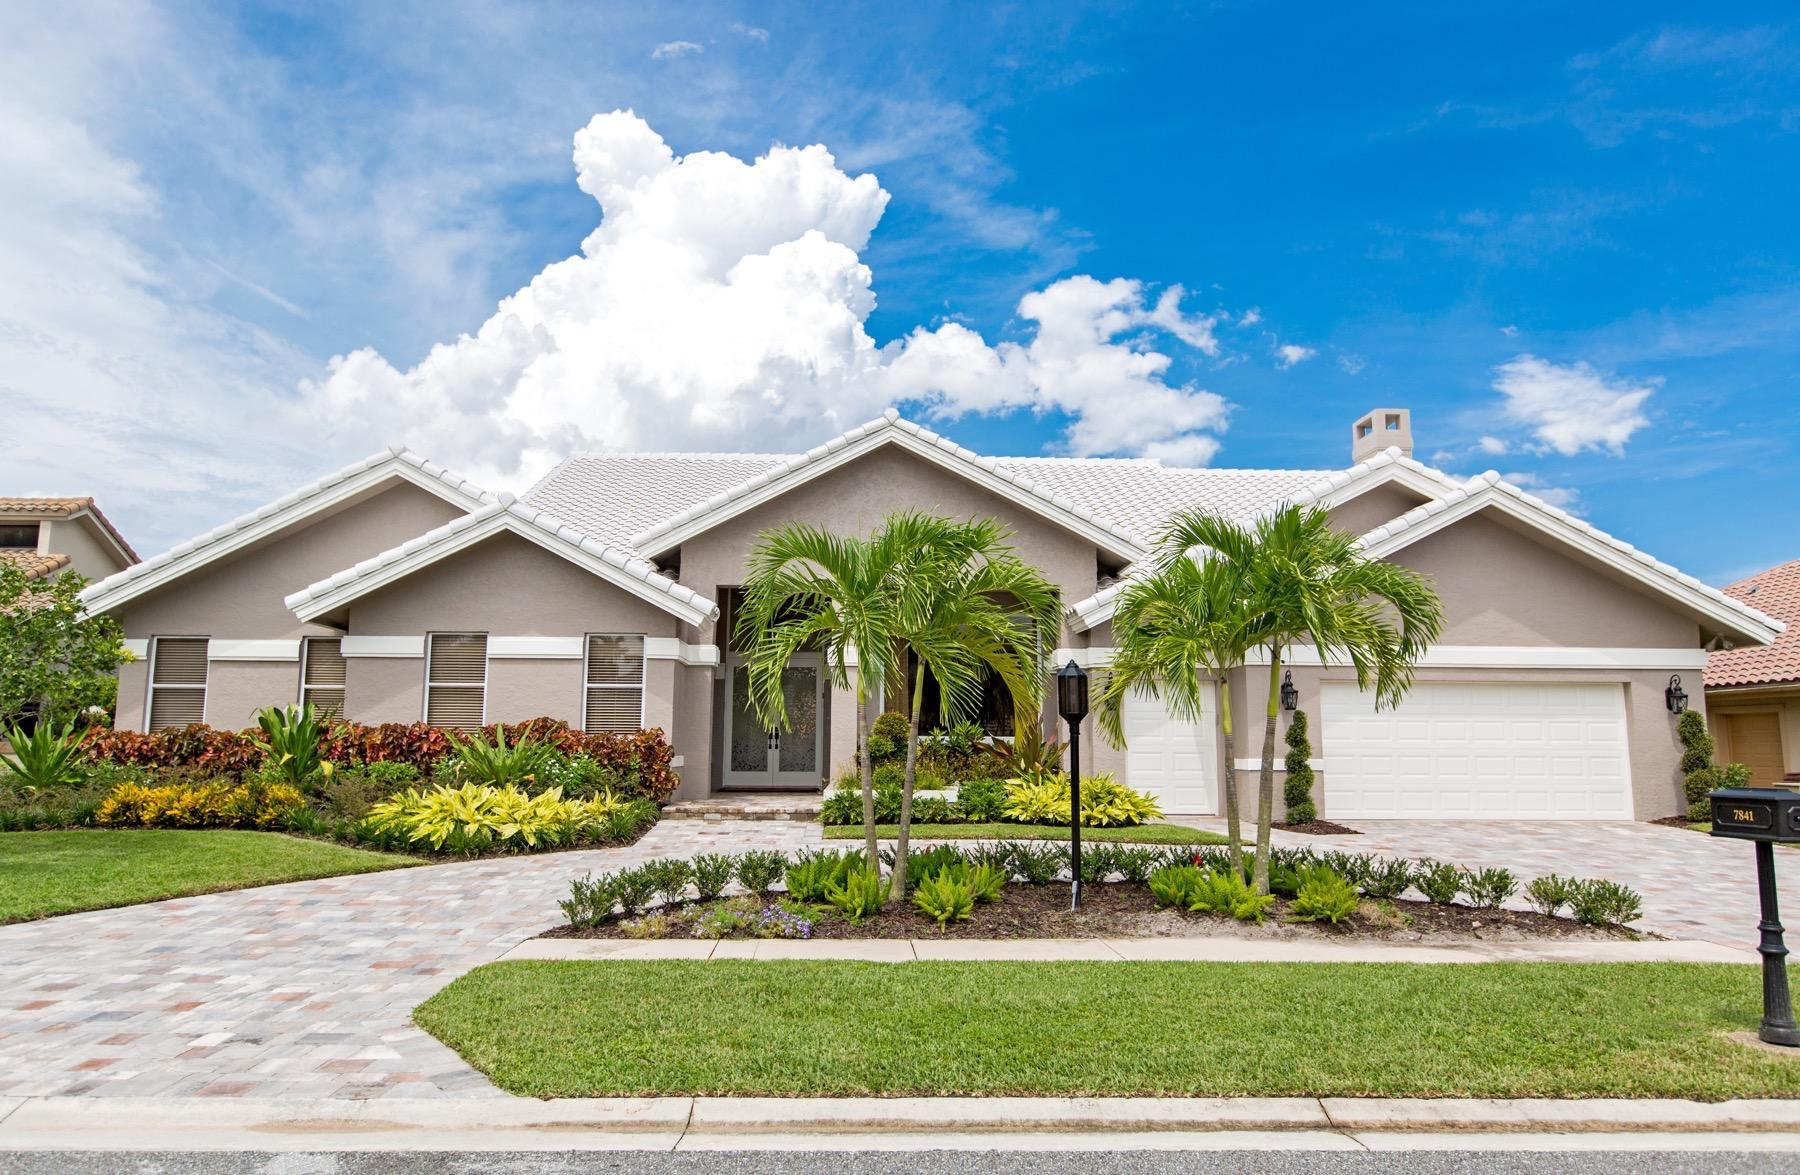 Photo of 7841 Afton Villa Court, Boca Raton, FL 33433